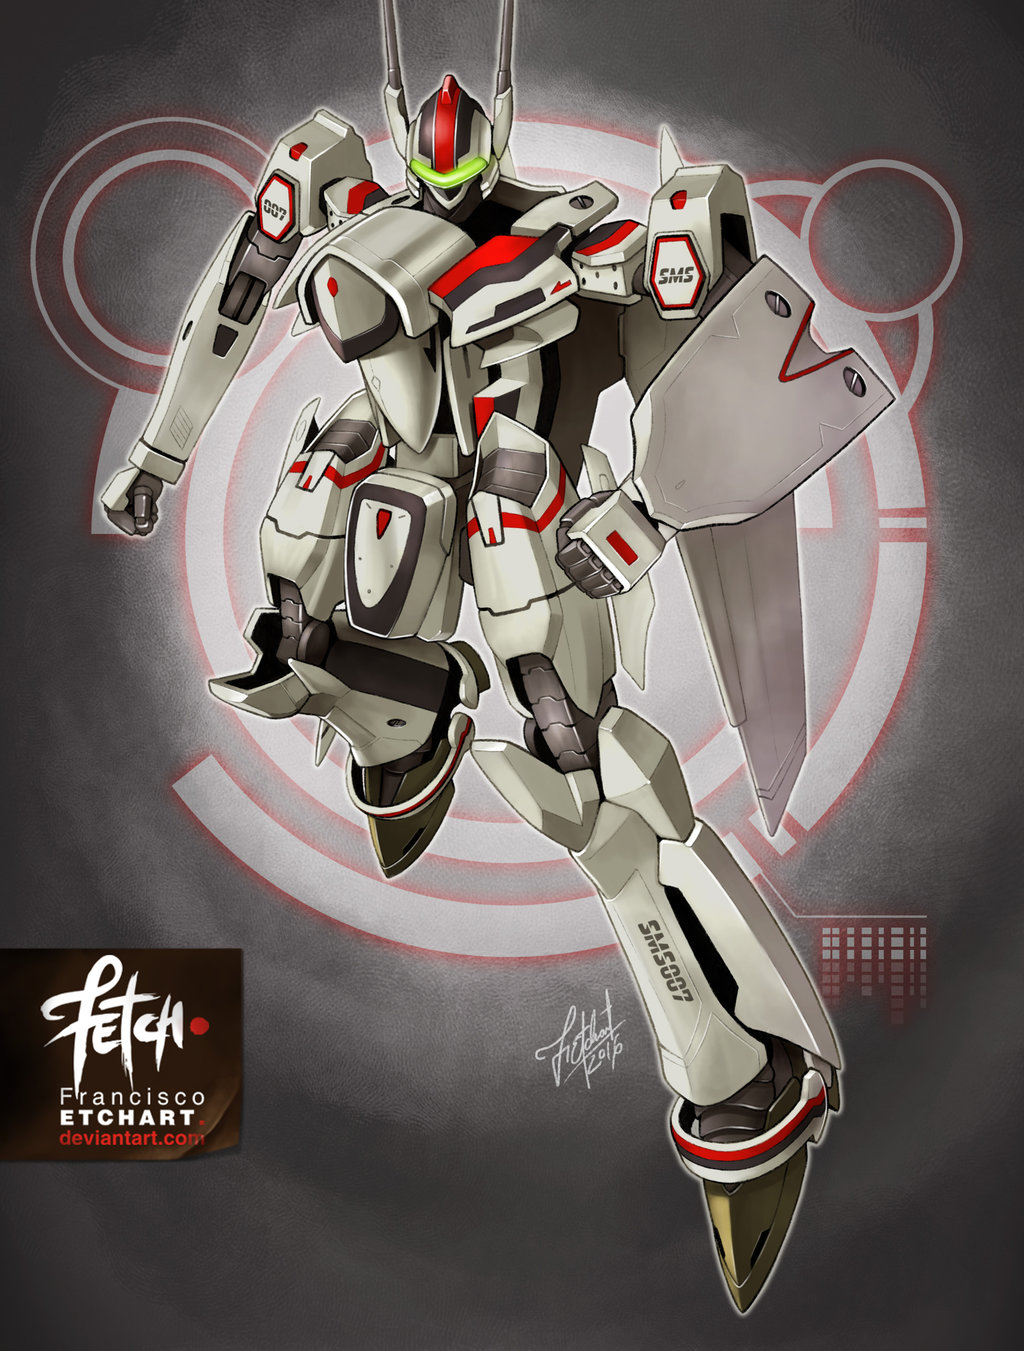 2016 dated energy_cannon franciscoetchart highres macross macross_frontier mecha s.m.s. science_fiction shield signature tagme variable_fighter vf-25 watermark